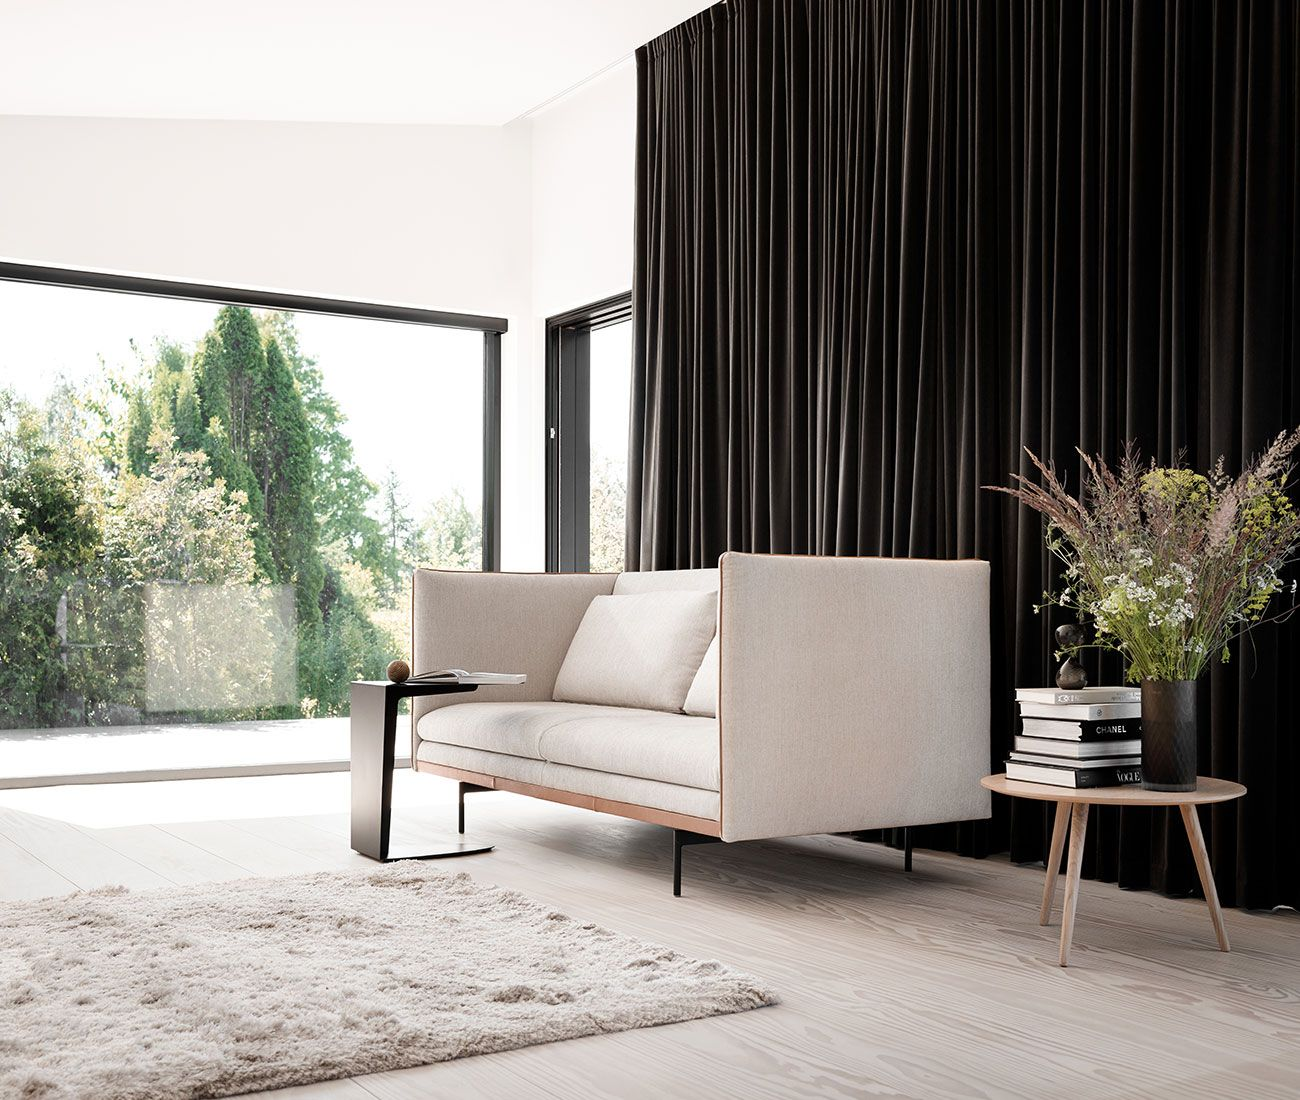 Beige sofa and rug and Ottawa side table in black